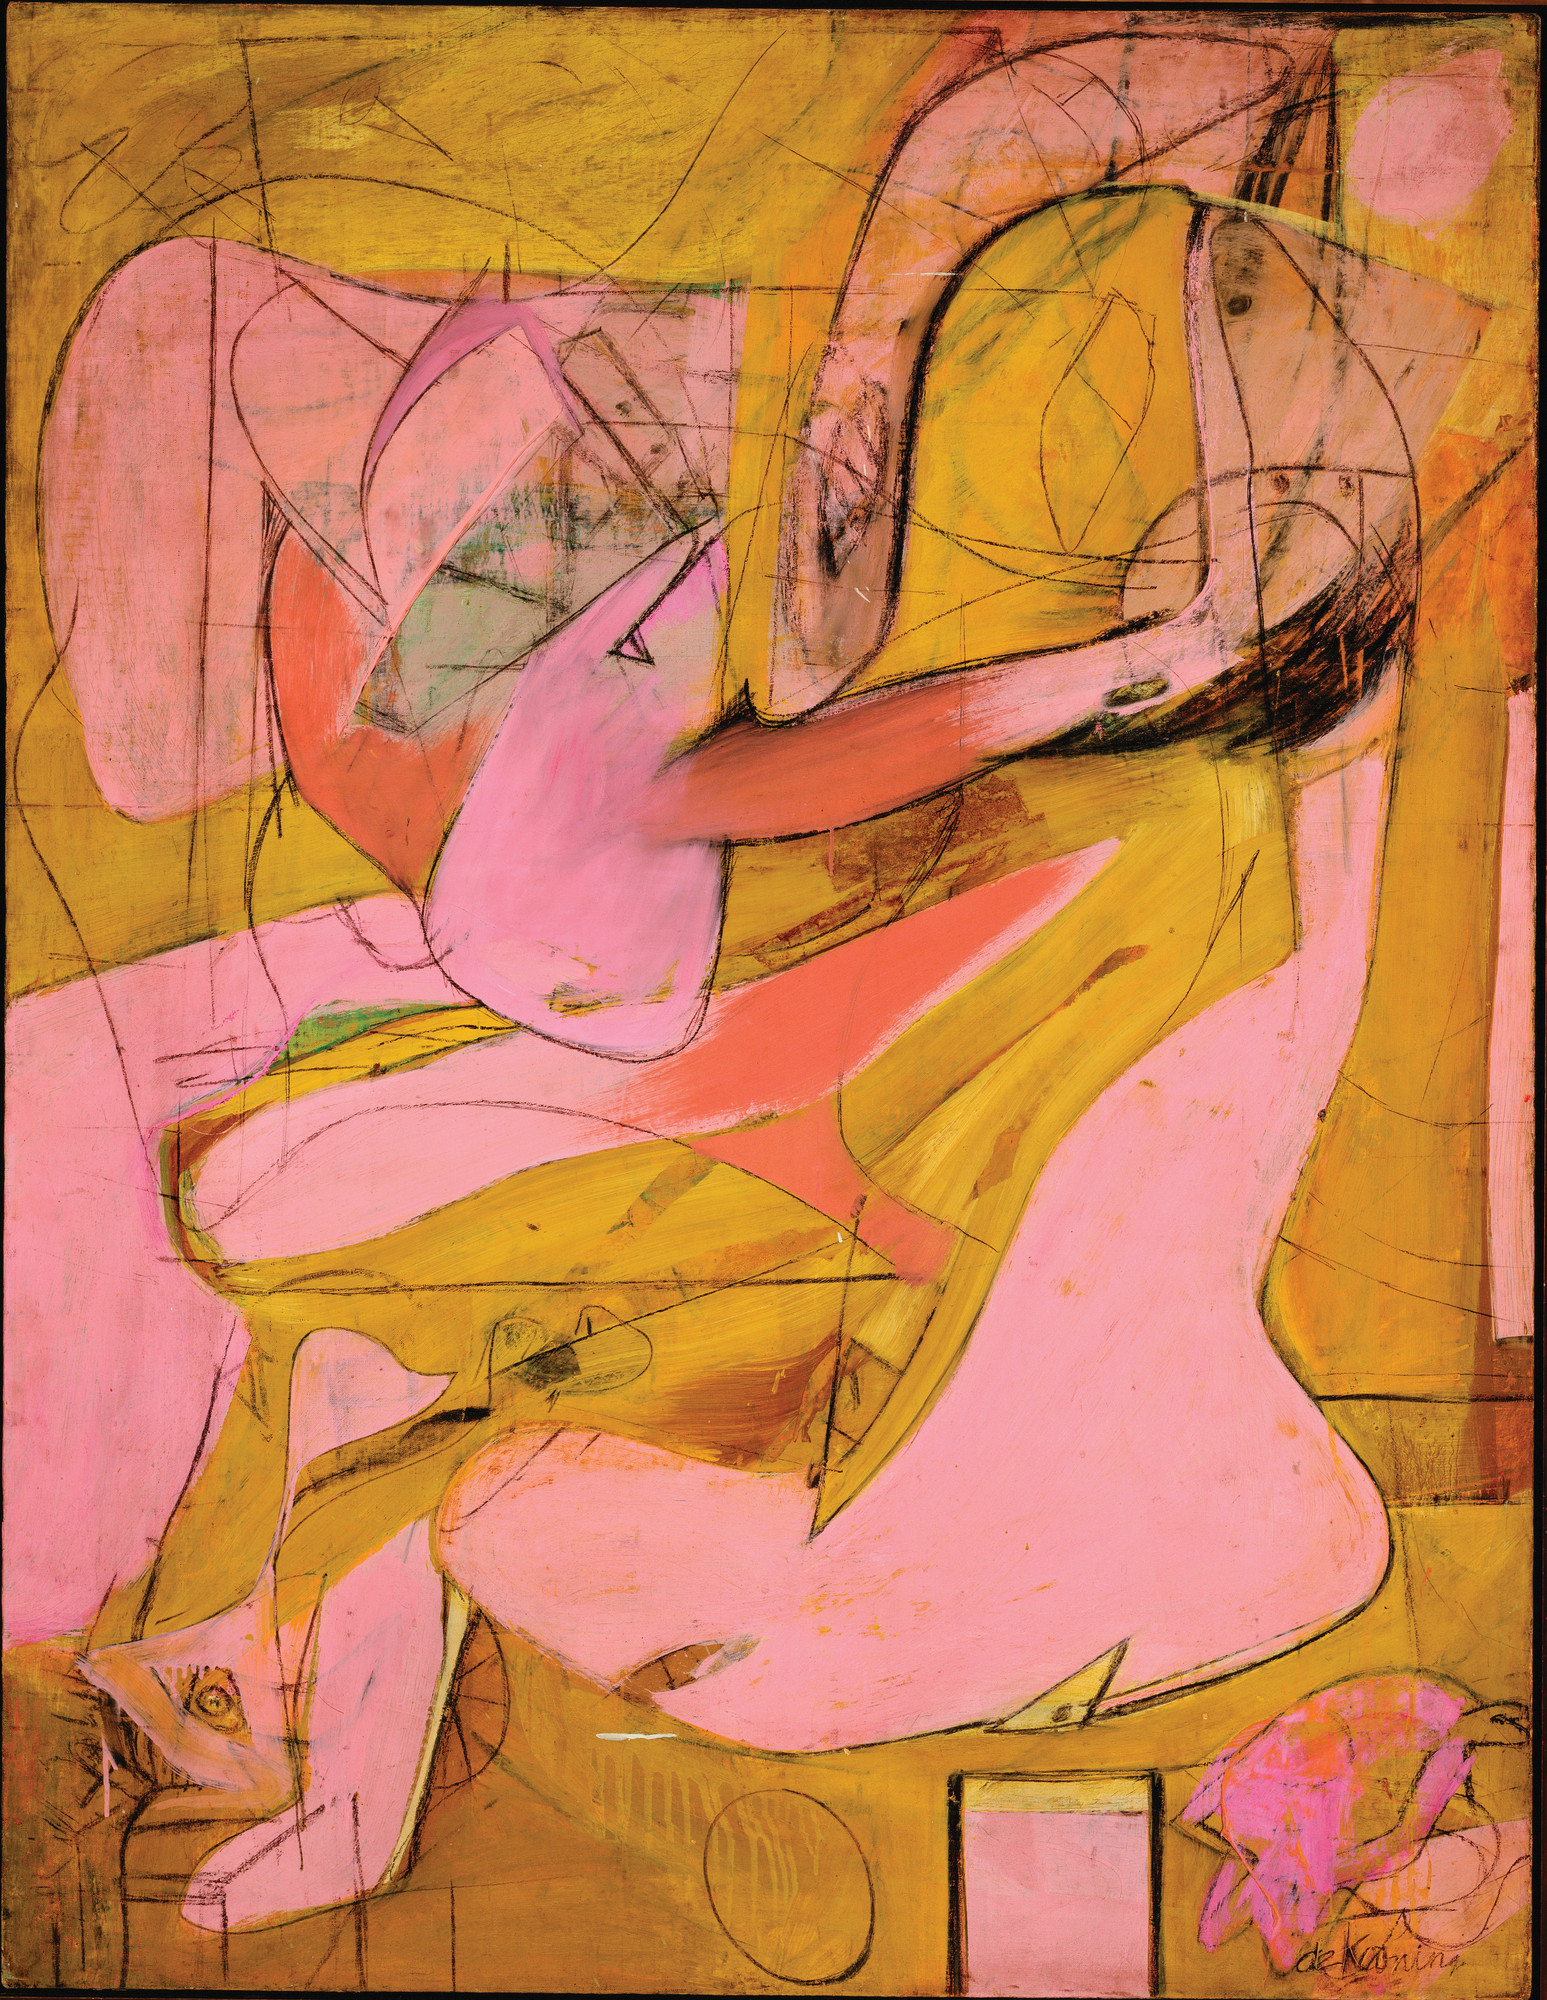 Willem de Kooning. Pink Angels. c. 1945. Oil and charcoal on canvas, 52 × 40″ (132.1 × 101.6 cm). Frederick R. Weisman Art Foundation, Los Angeles. © 2011 The Willem de Kooning Foundation/Artists Rights Society (ARS), New York